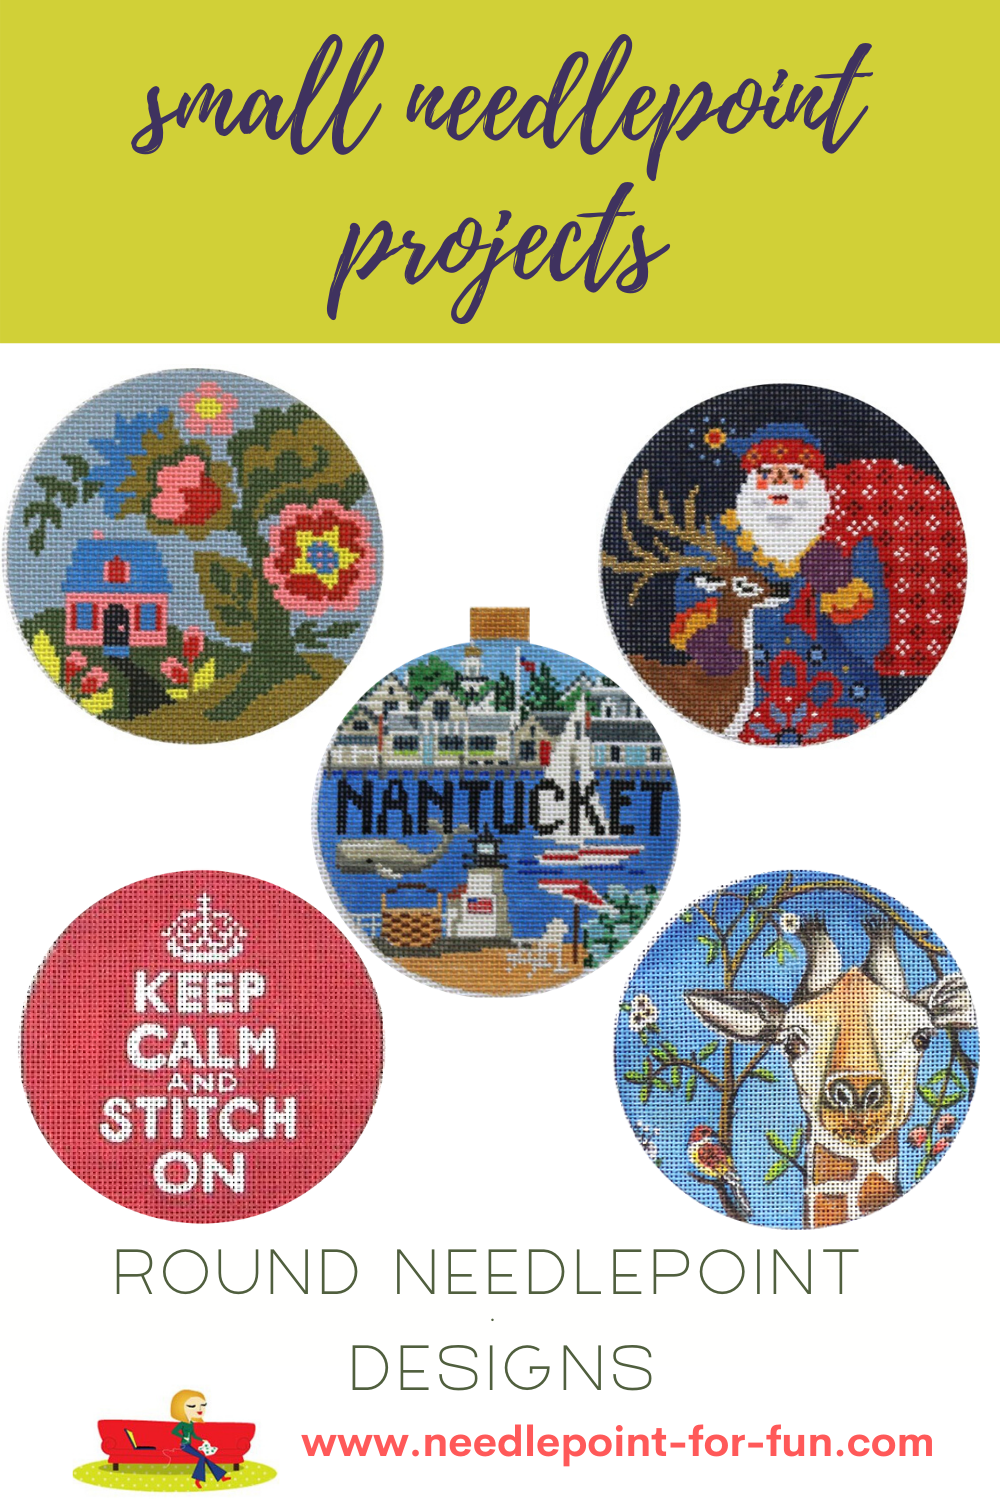 Small needlepoint projects